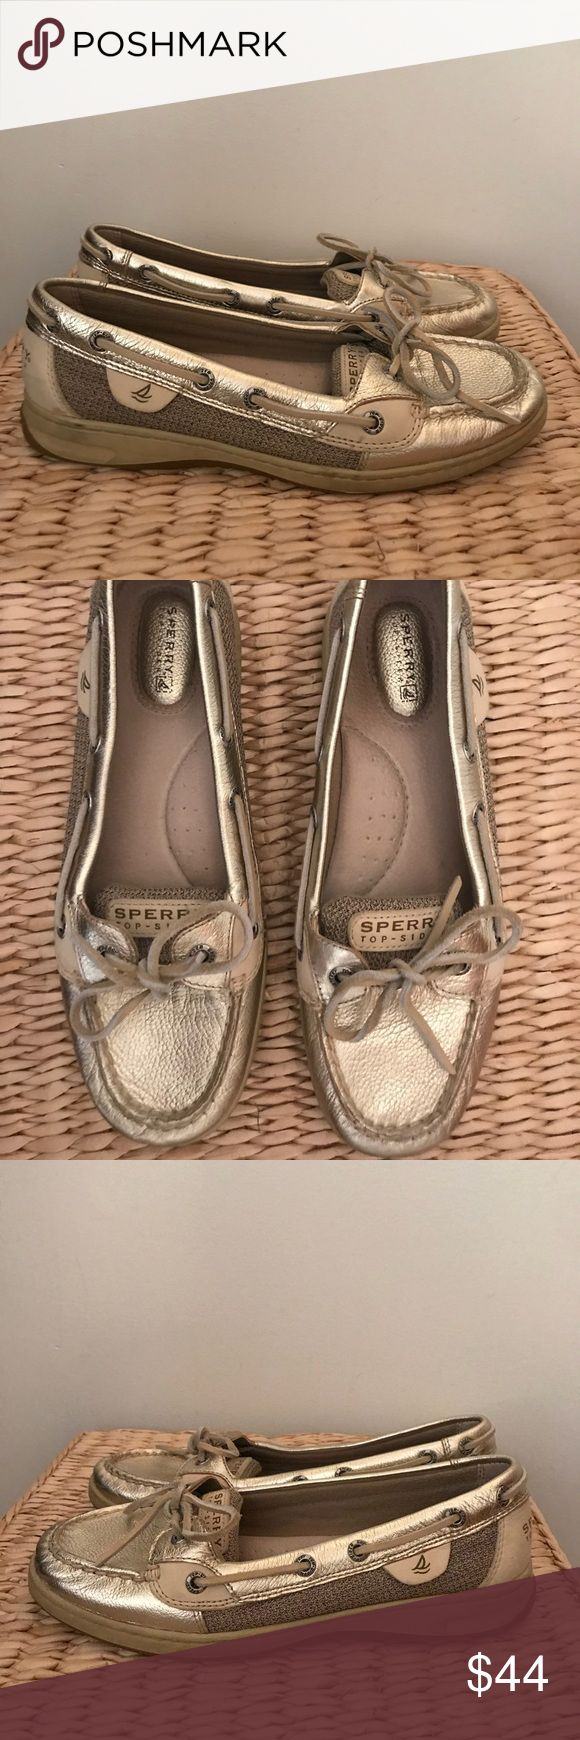 Women's Size 8.5 Gold Sperry Angelfish Boat Shoe In good condition, have only been worn a handful of times. The inside of the shoes look dark but the shoes are in pretty good shape! Sperry Shoes Flats & Loafers